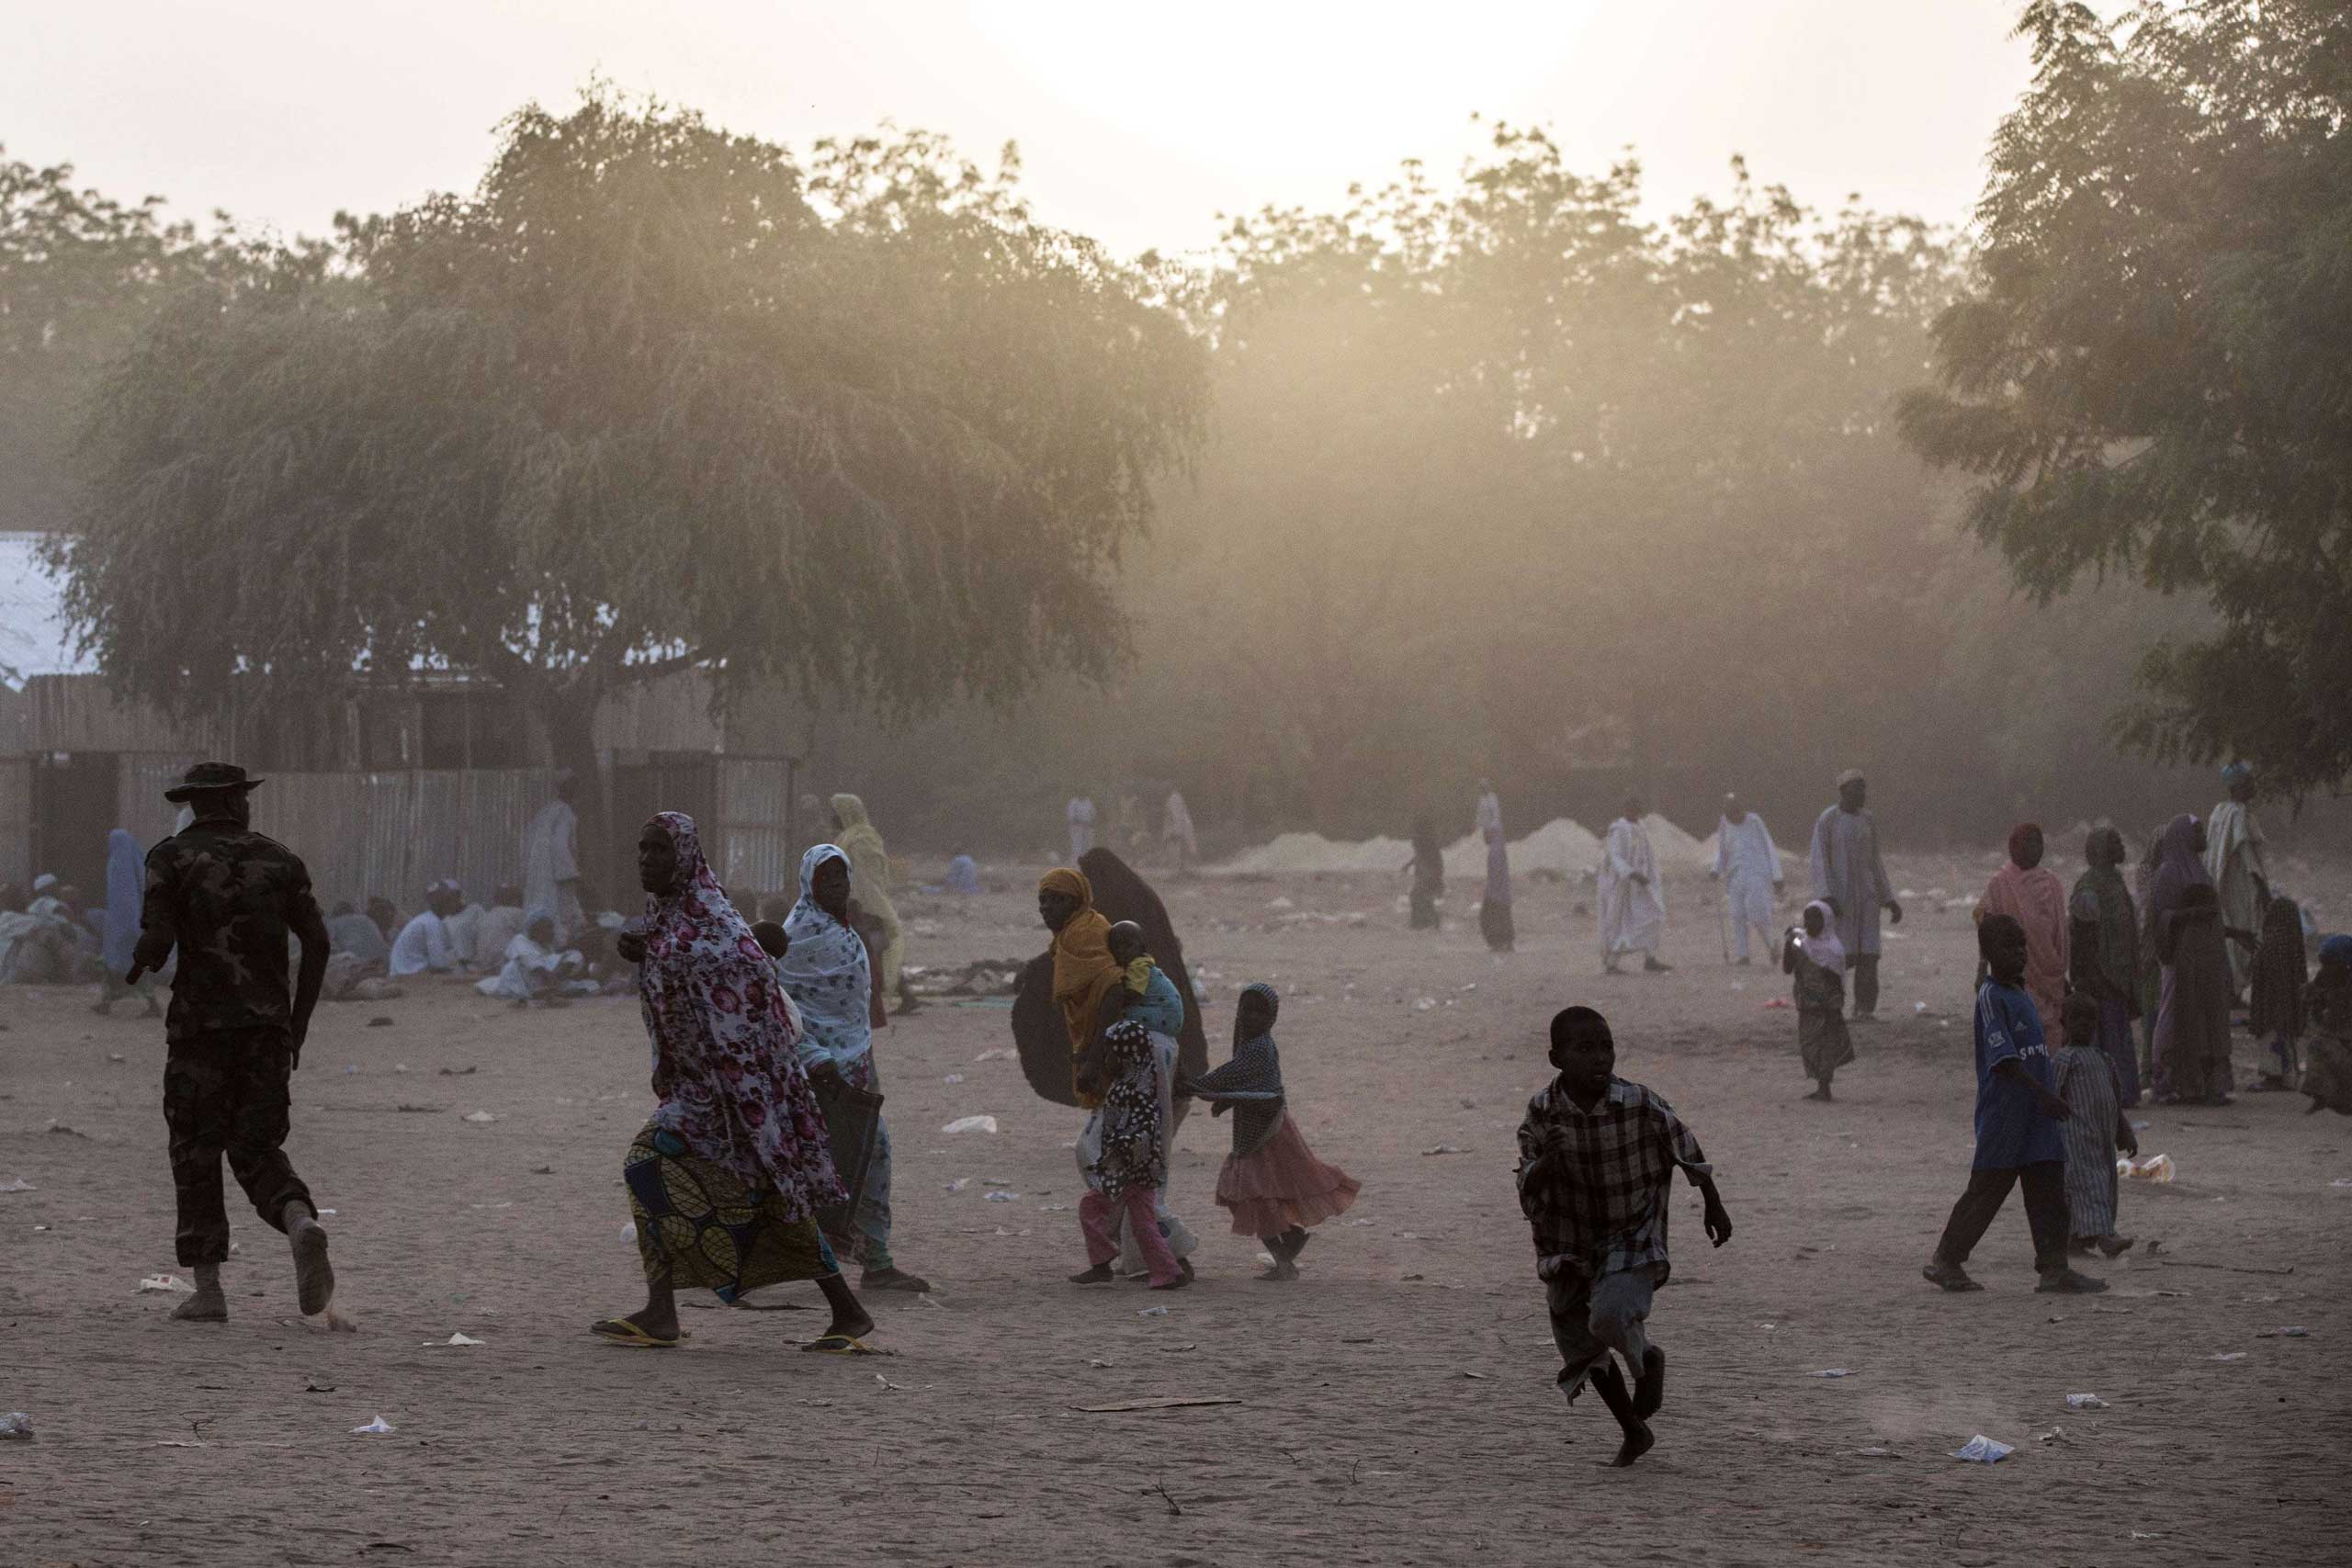 Civilians who fled the fighting in Bama and the surrounding areas in recent days walk at a makeshift camp for displaced people on the outskirts of Maiduguri, northwest of Bama on March 25, 2015.